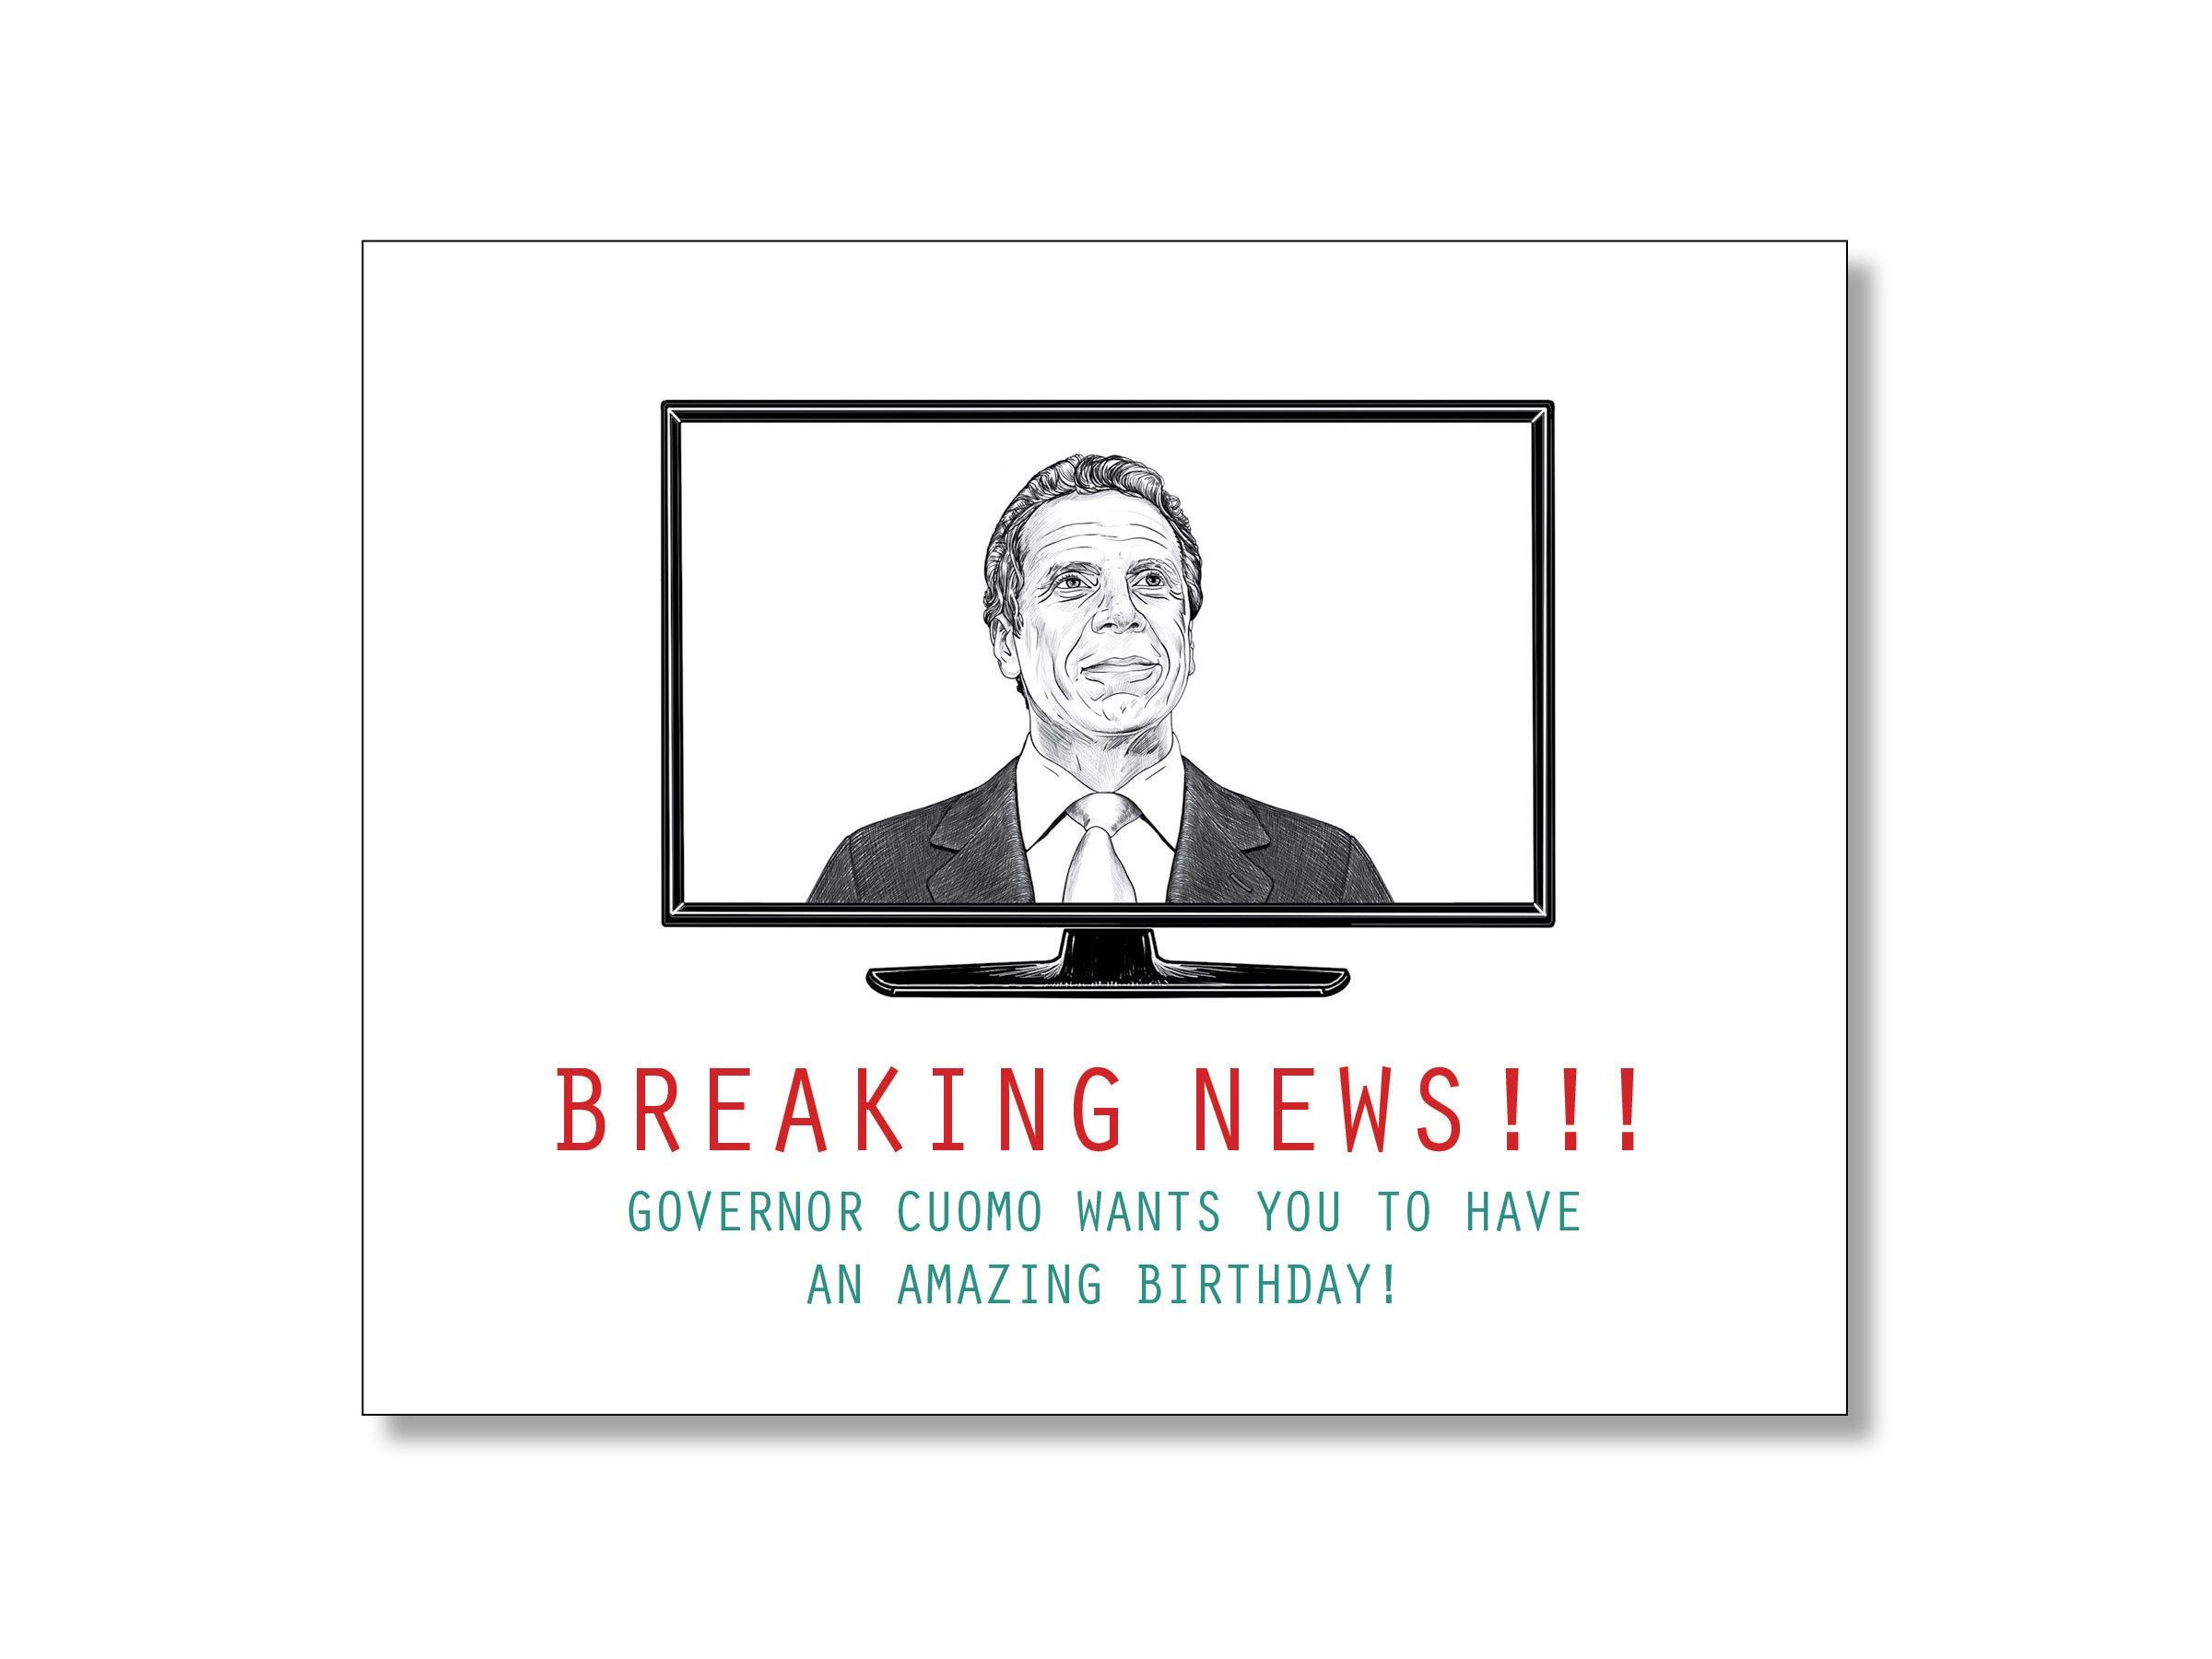 Governor Cuomo Birthday Card Funny Liberal Birthday Card Social Distancing Birthday Card Andrew C In 2020 Funny Fathers Day Card Funny Birthday Cards Birthday Cards